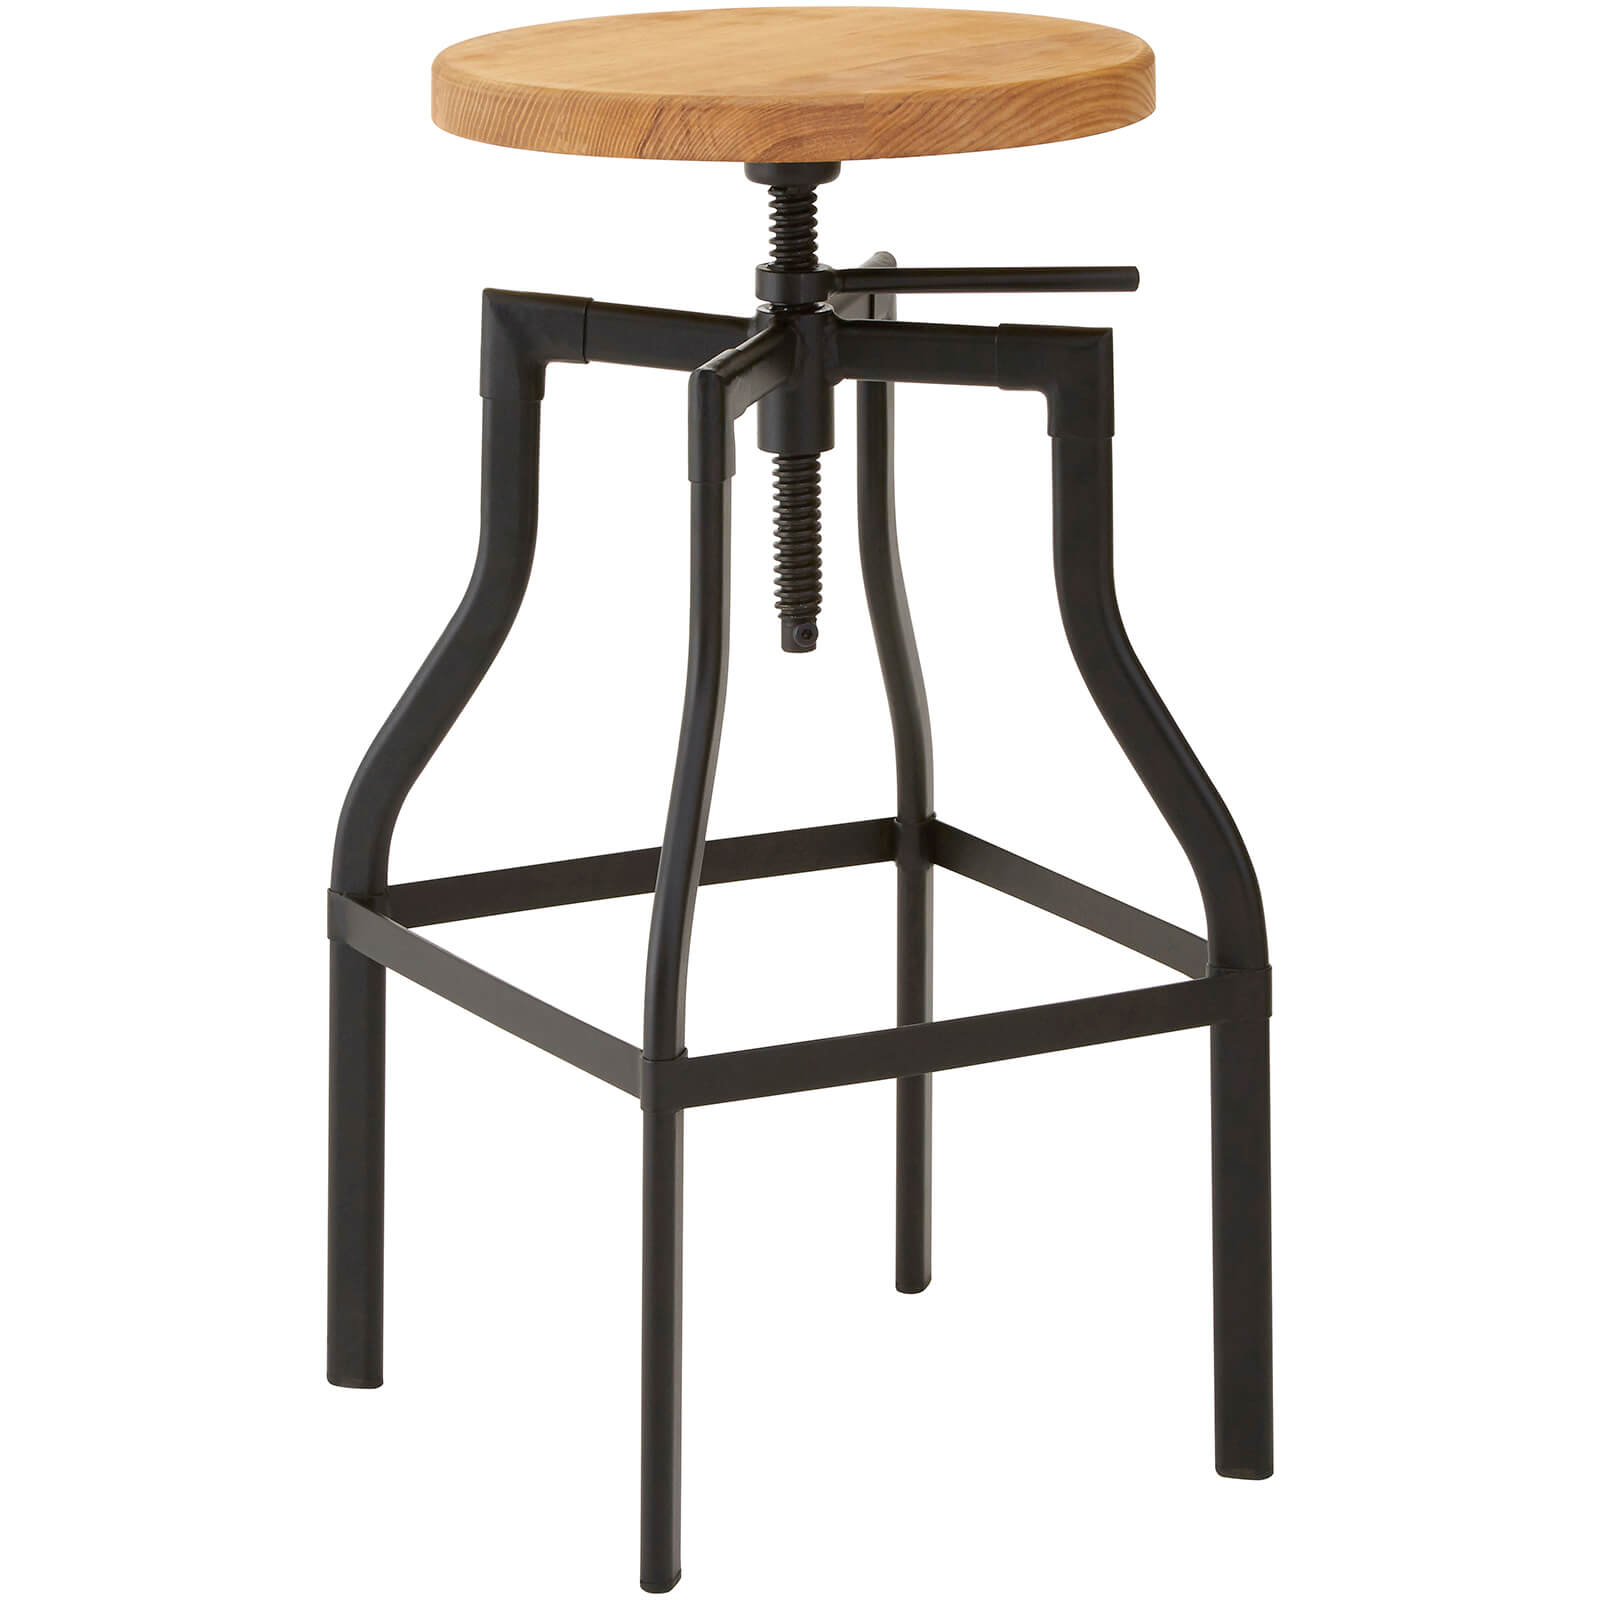 New Foundry Bar Stool - Ash/Metal